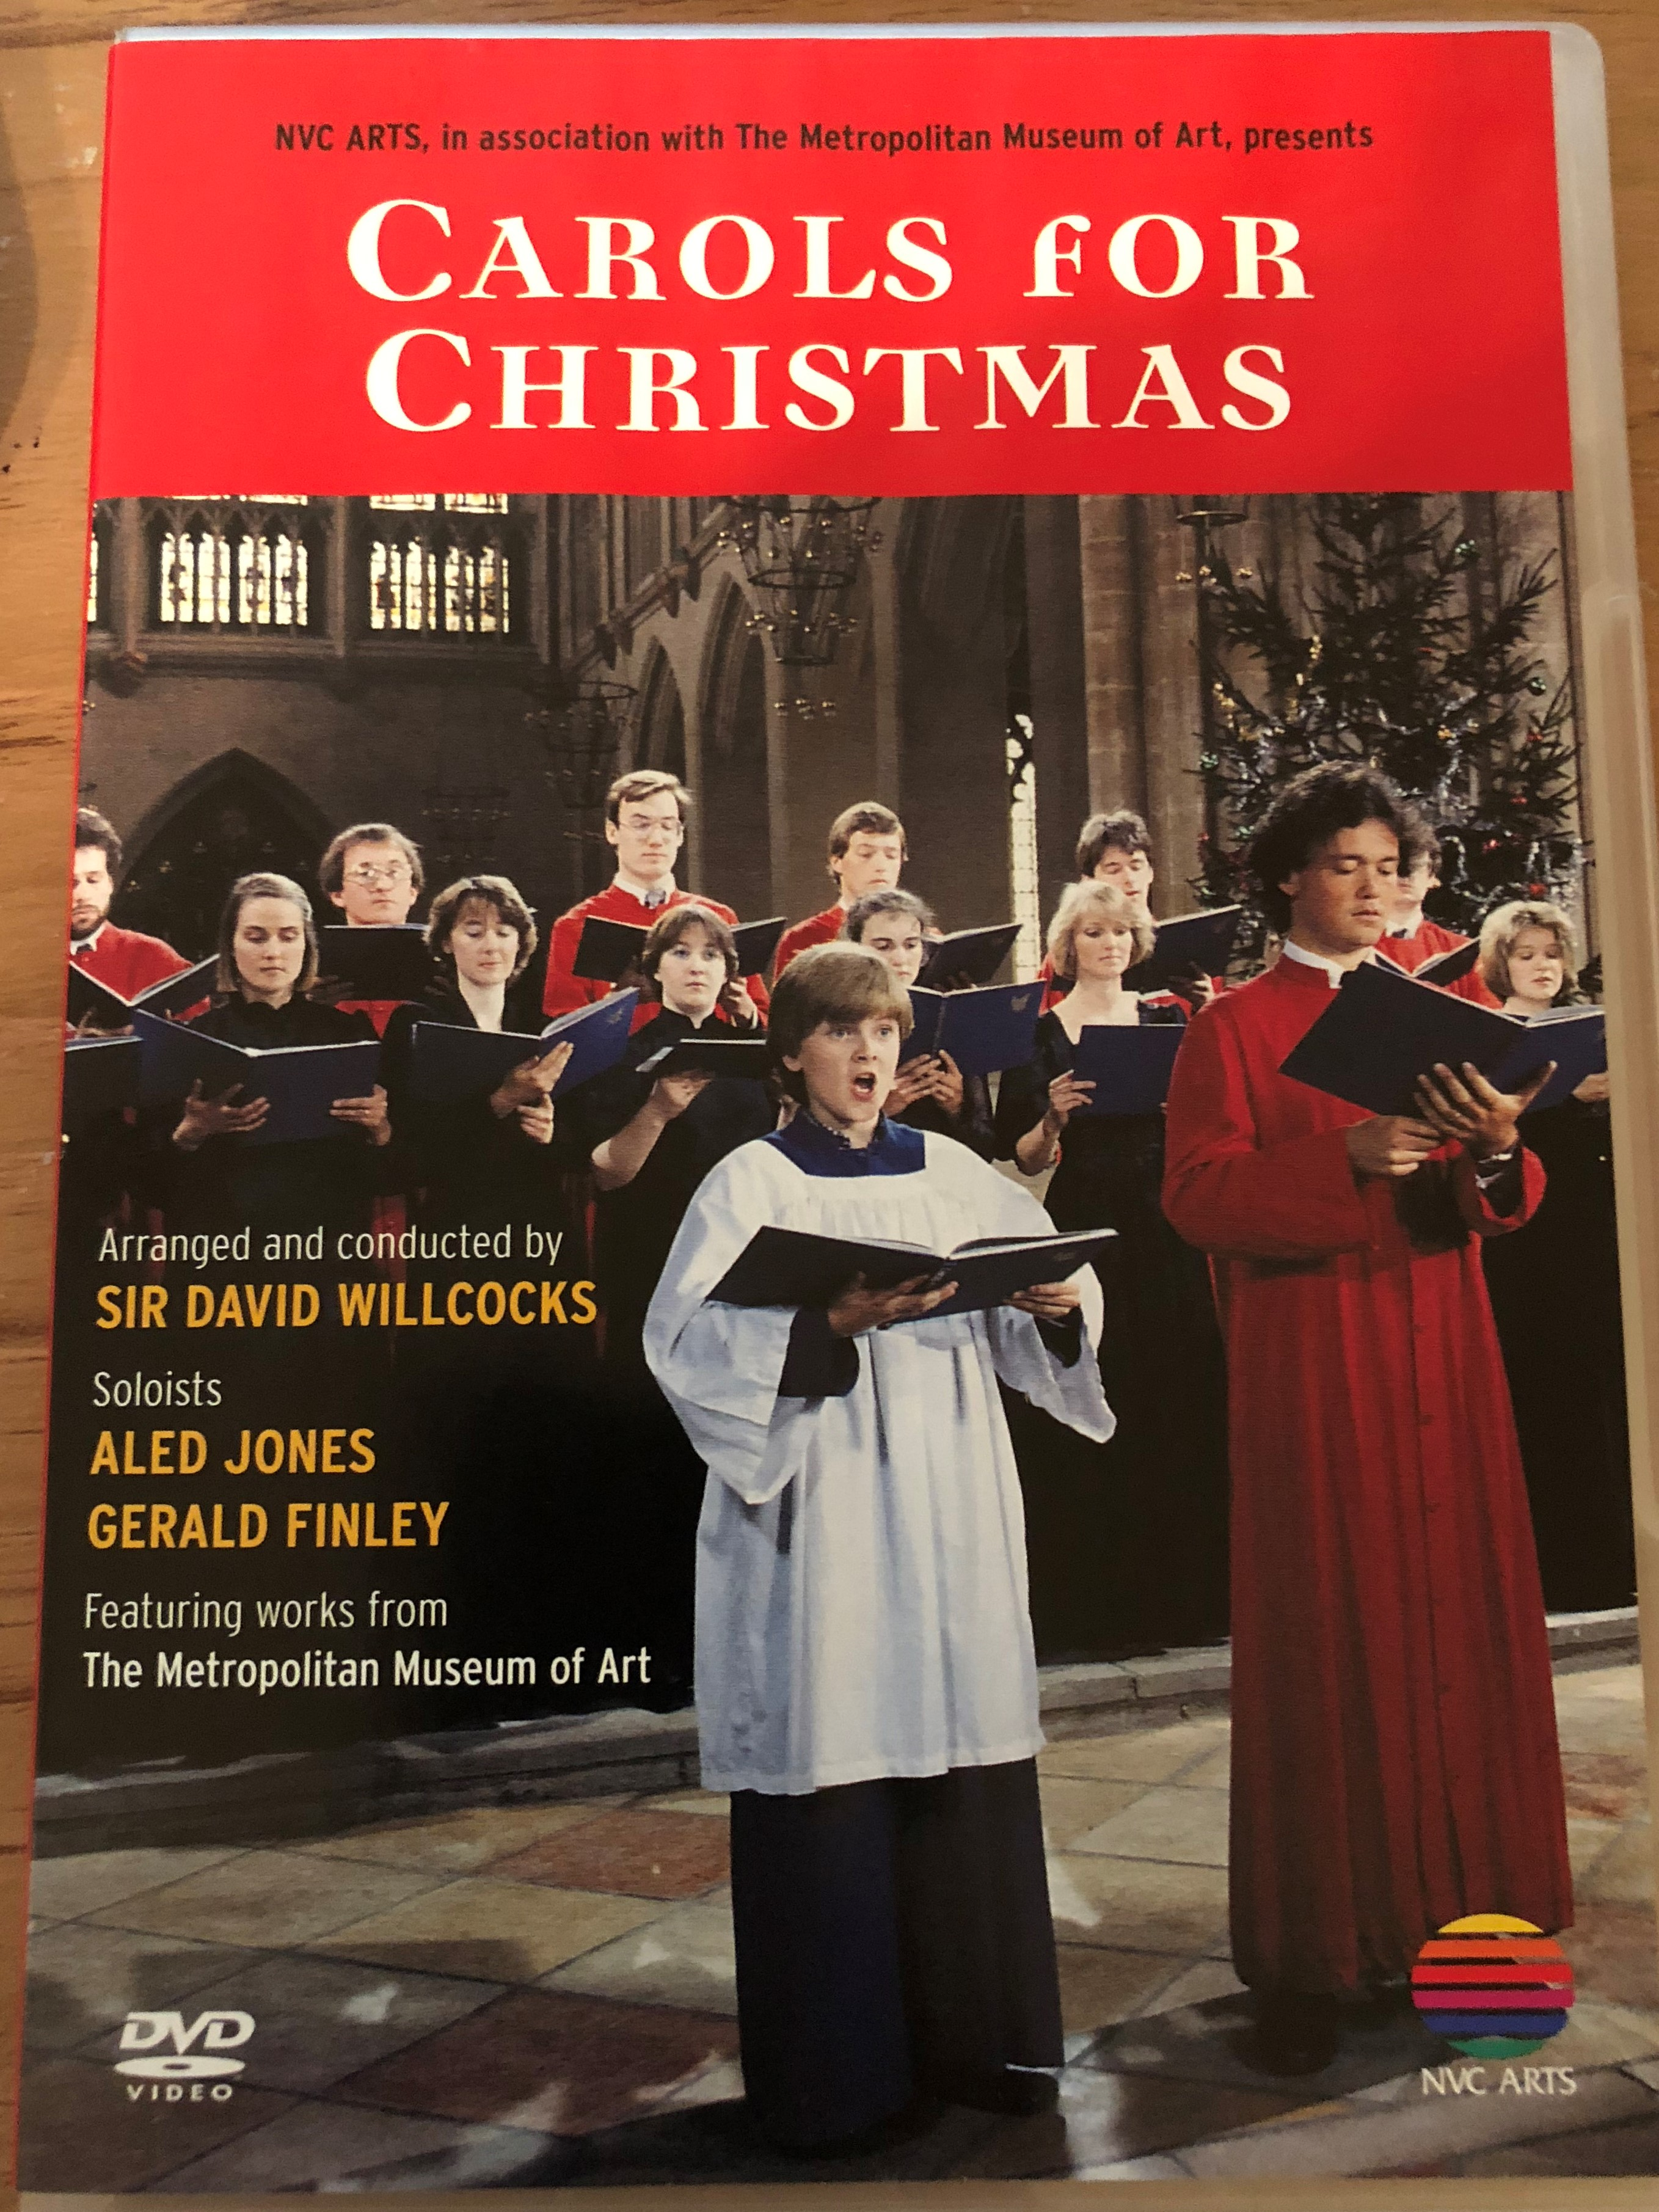 carols-for-christmas-dvd-1985-directed-by-christopher-swann-arranged-conducted-by-sir-david-willcocks-soloists-aled-jones-gerald-finley-nvc-metropolitan-museum-of-art-1-.jpg